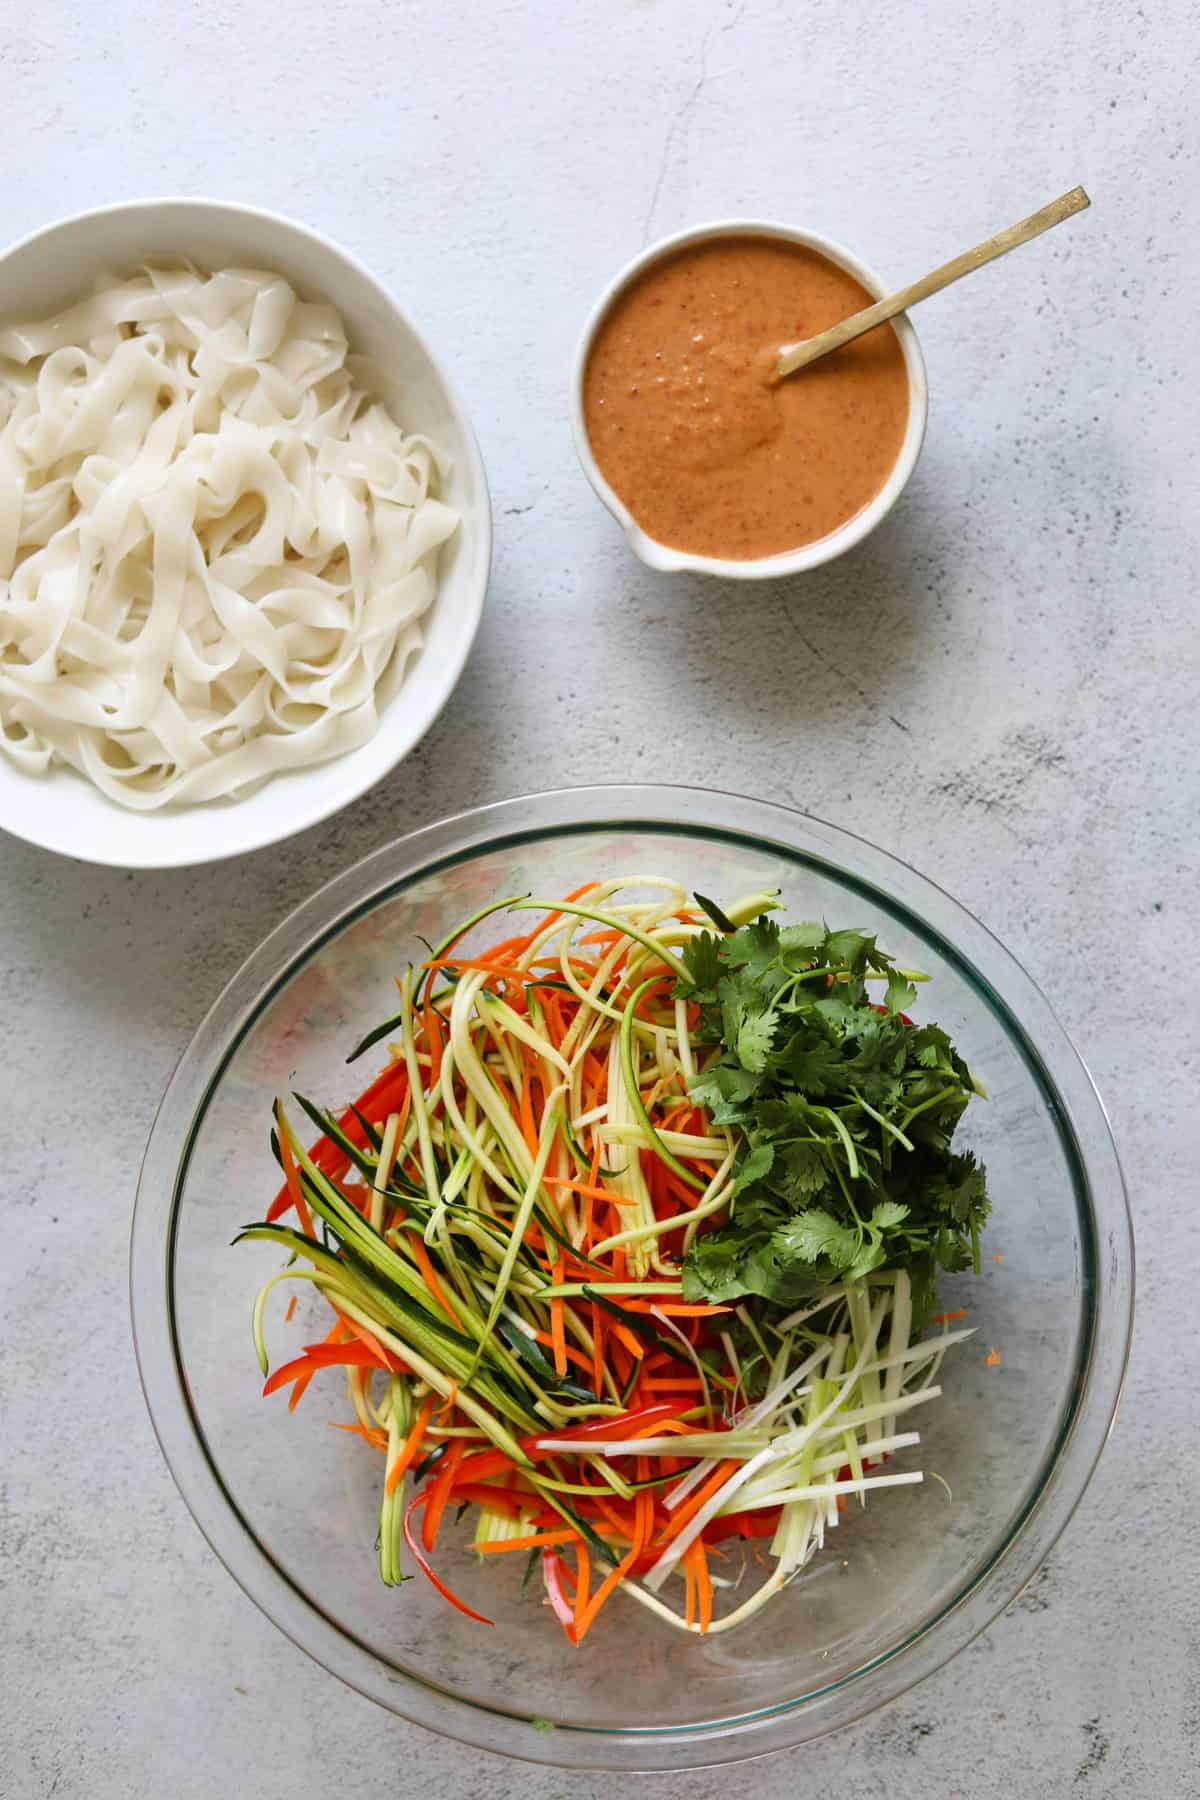 Creamy Coconut Thai Noodle Salad ingredients in a bowl with the sauce on the side